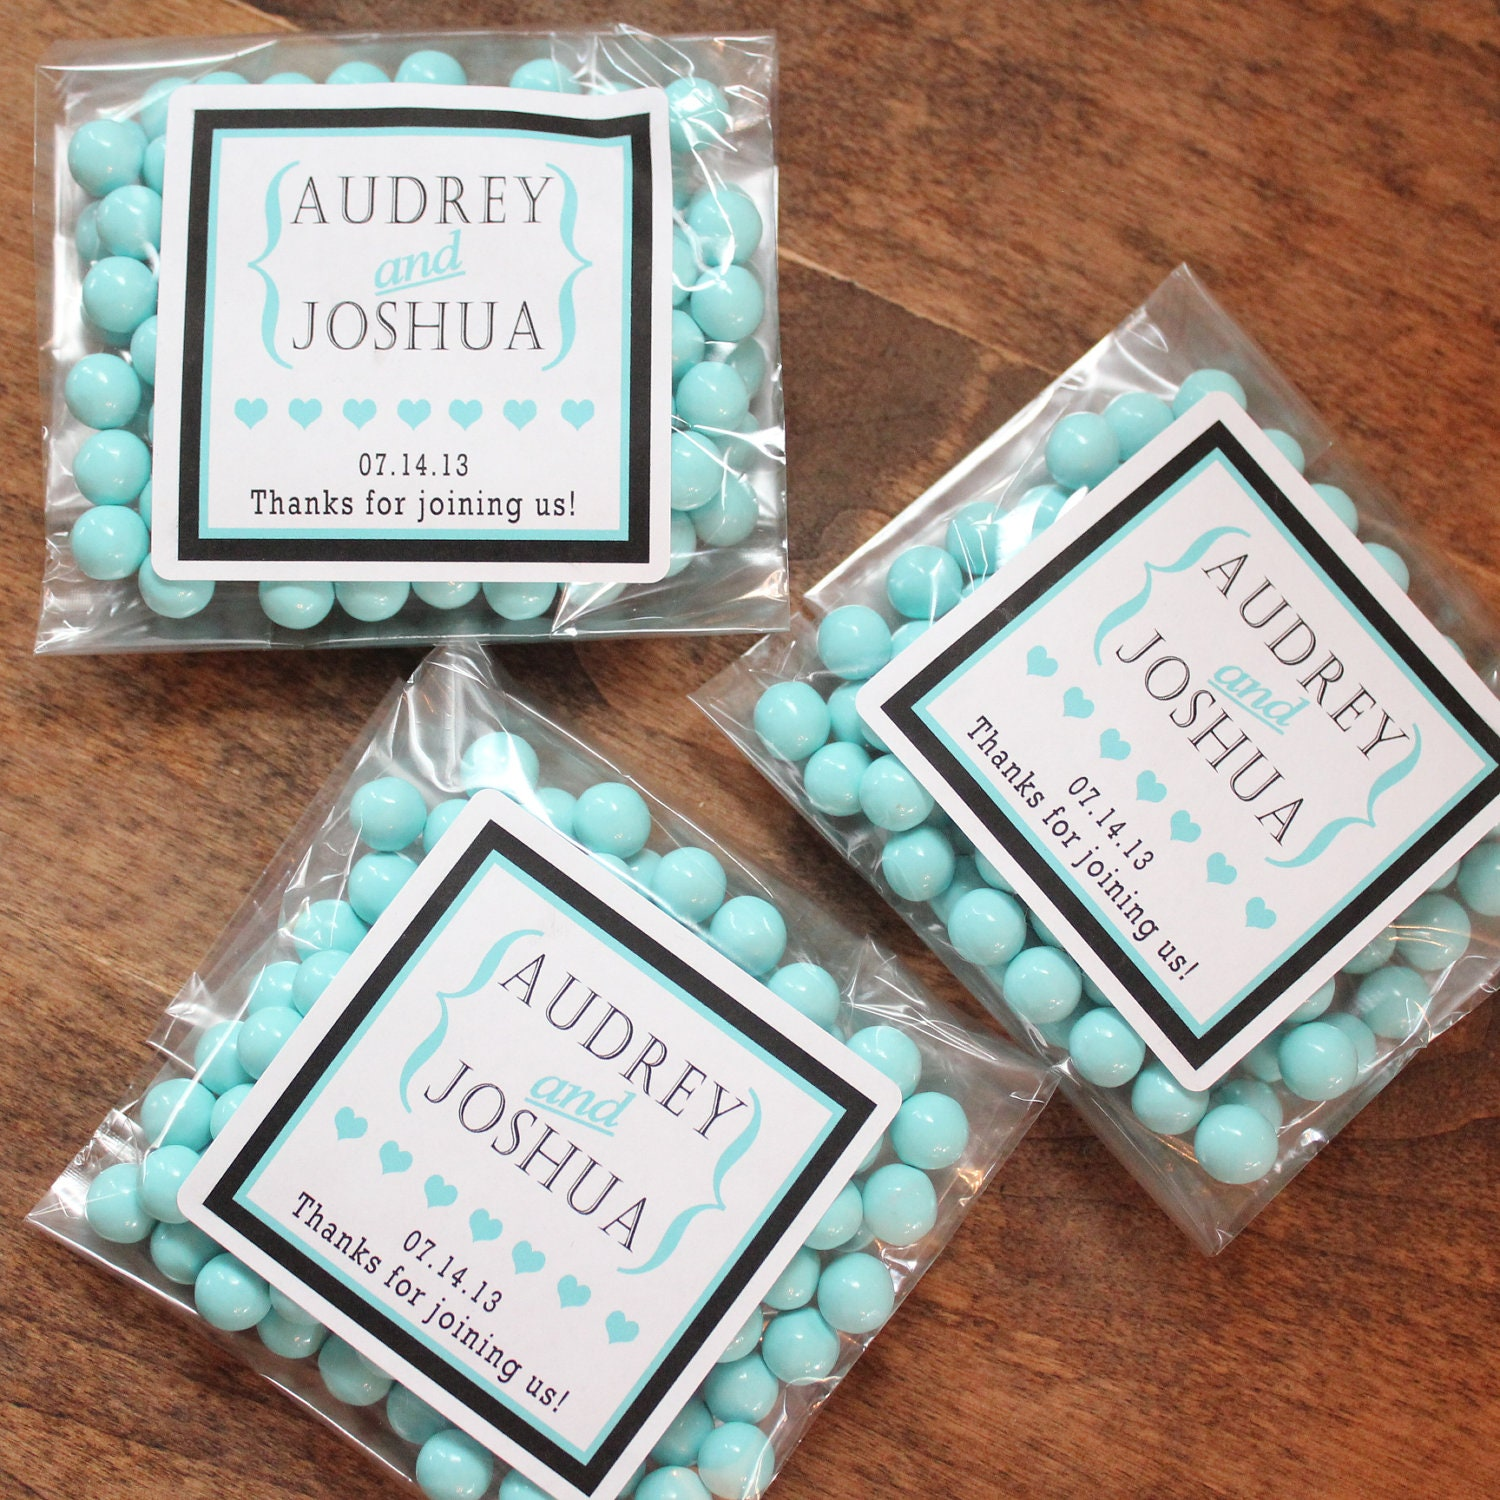 Wedding Favor Bags For Cookies : 24 Wedding Favor Candy Bags Cookie Bags ANY COLOR by thefavorbox